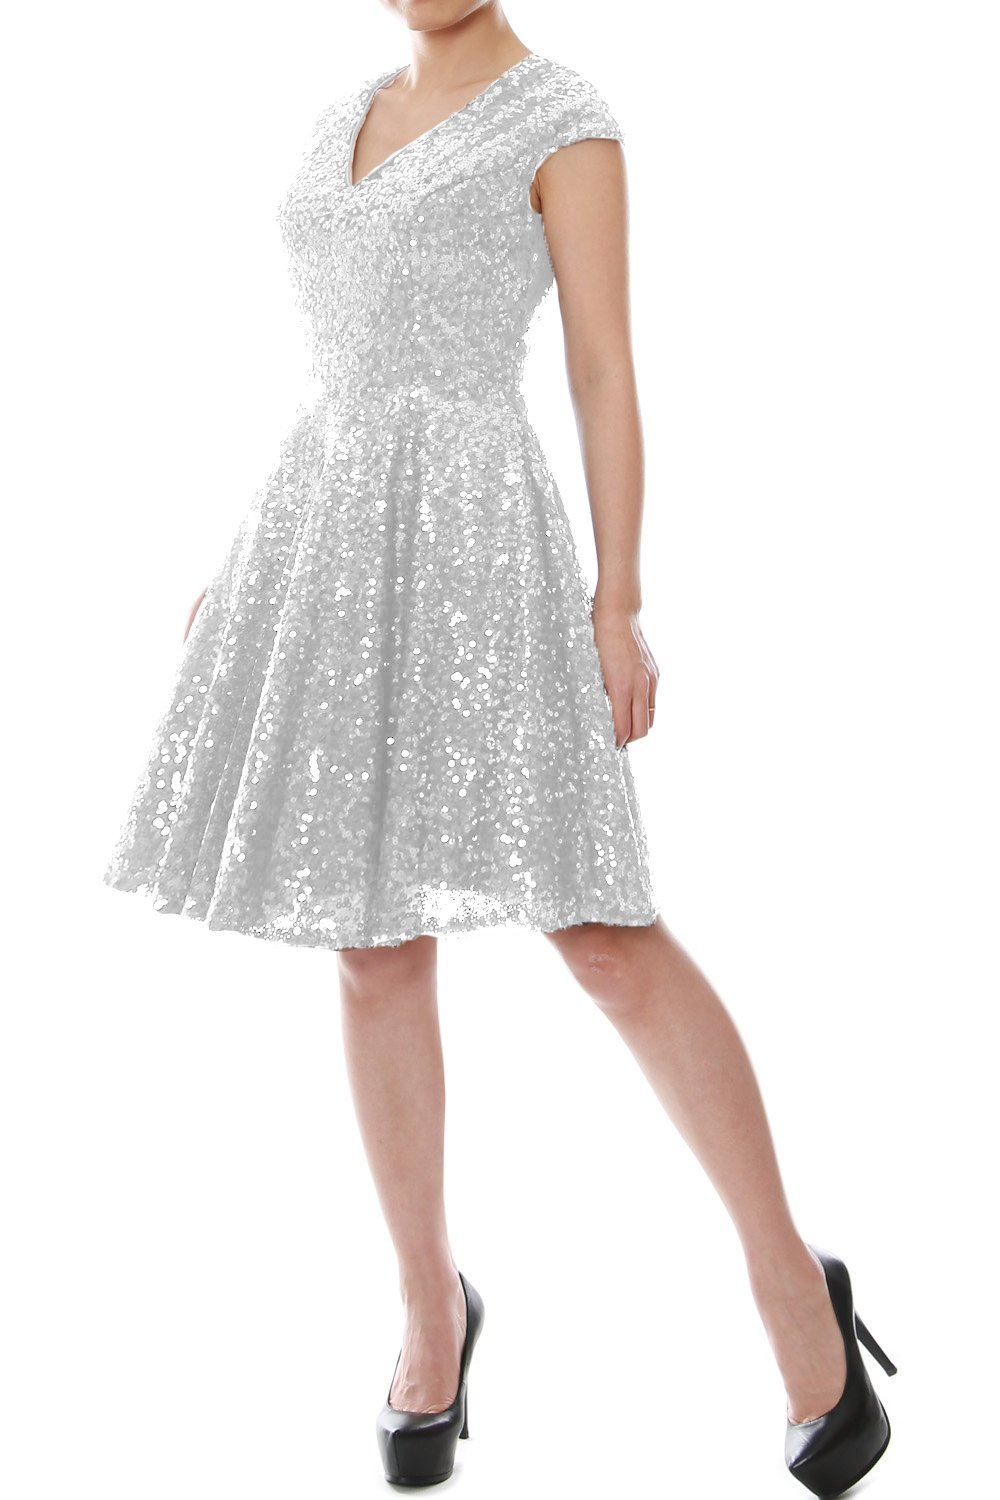 MACloth Women Cap Sleeve V Neck Sequin Short Bridesmaid Dress Formal Party Gown (8, Silver)